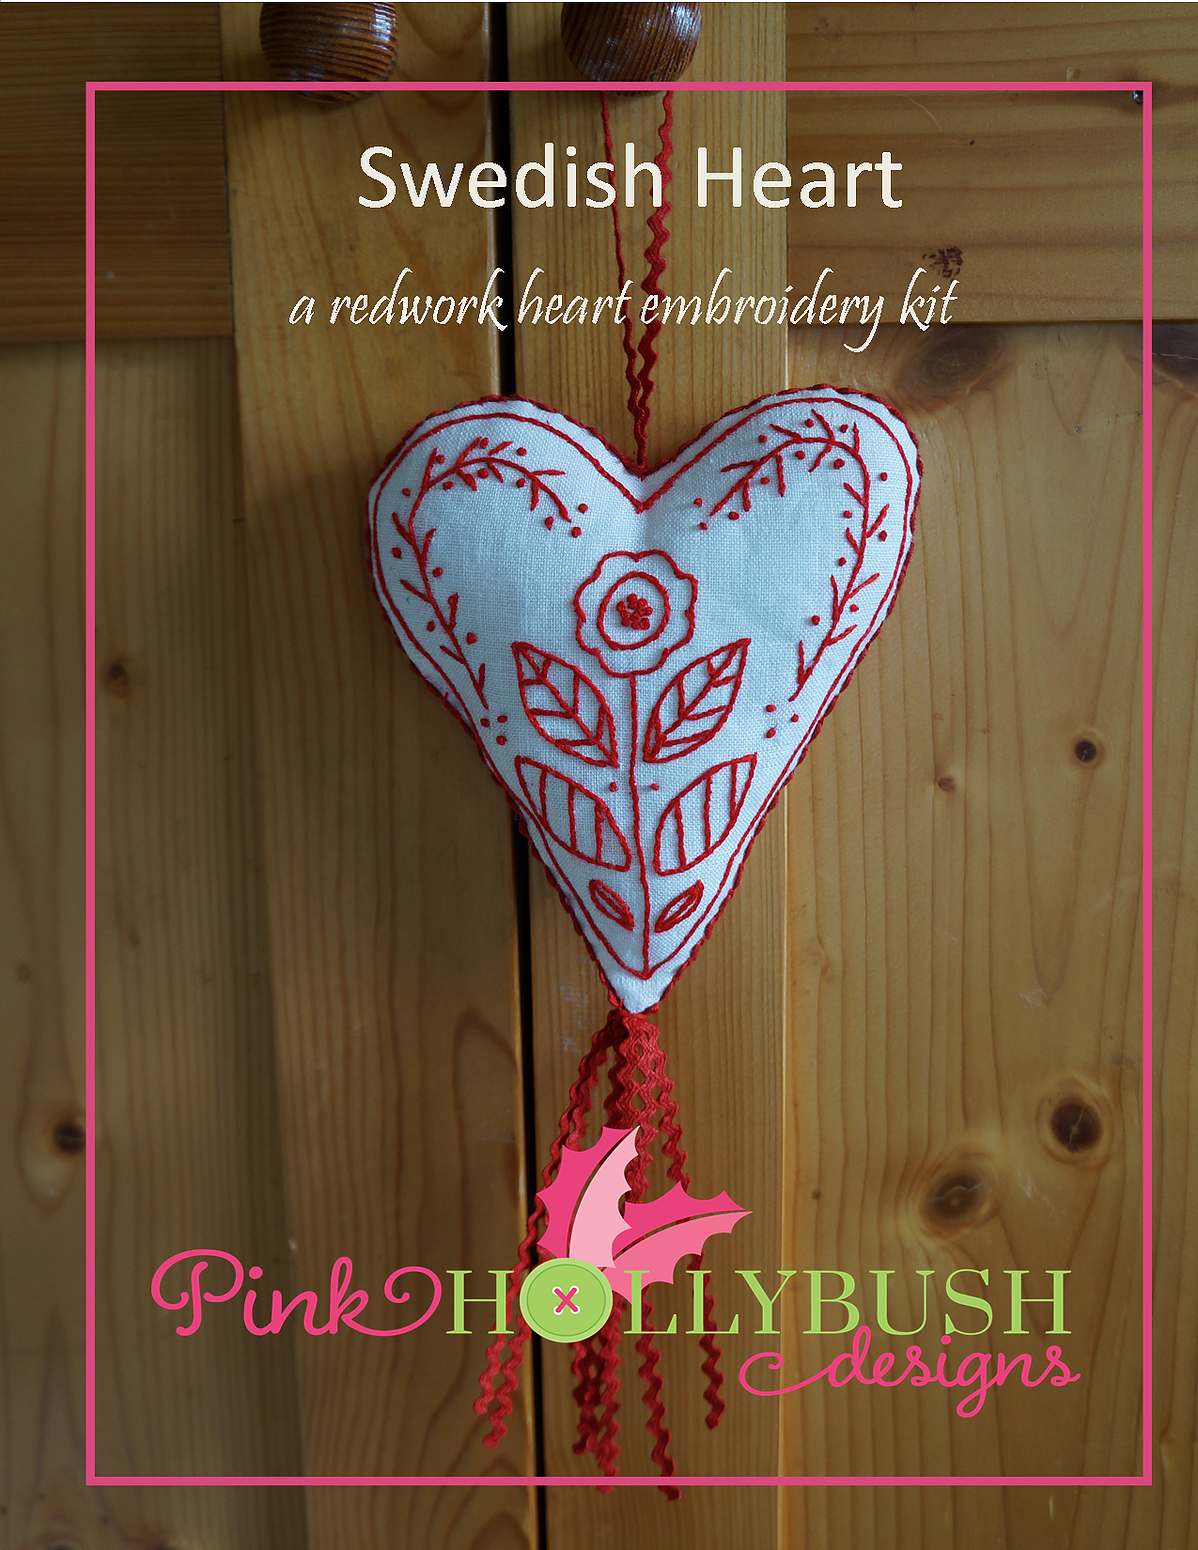 Swedish Heart a Redwork Embroidery Kit and Pattern to